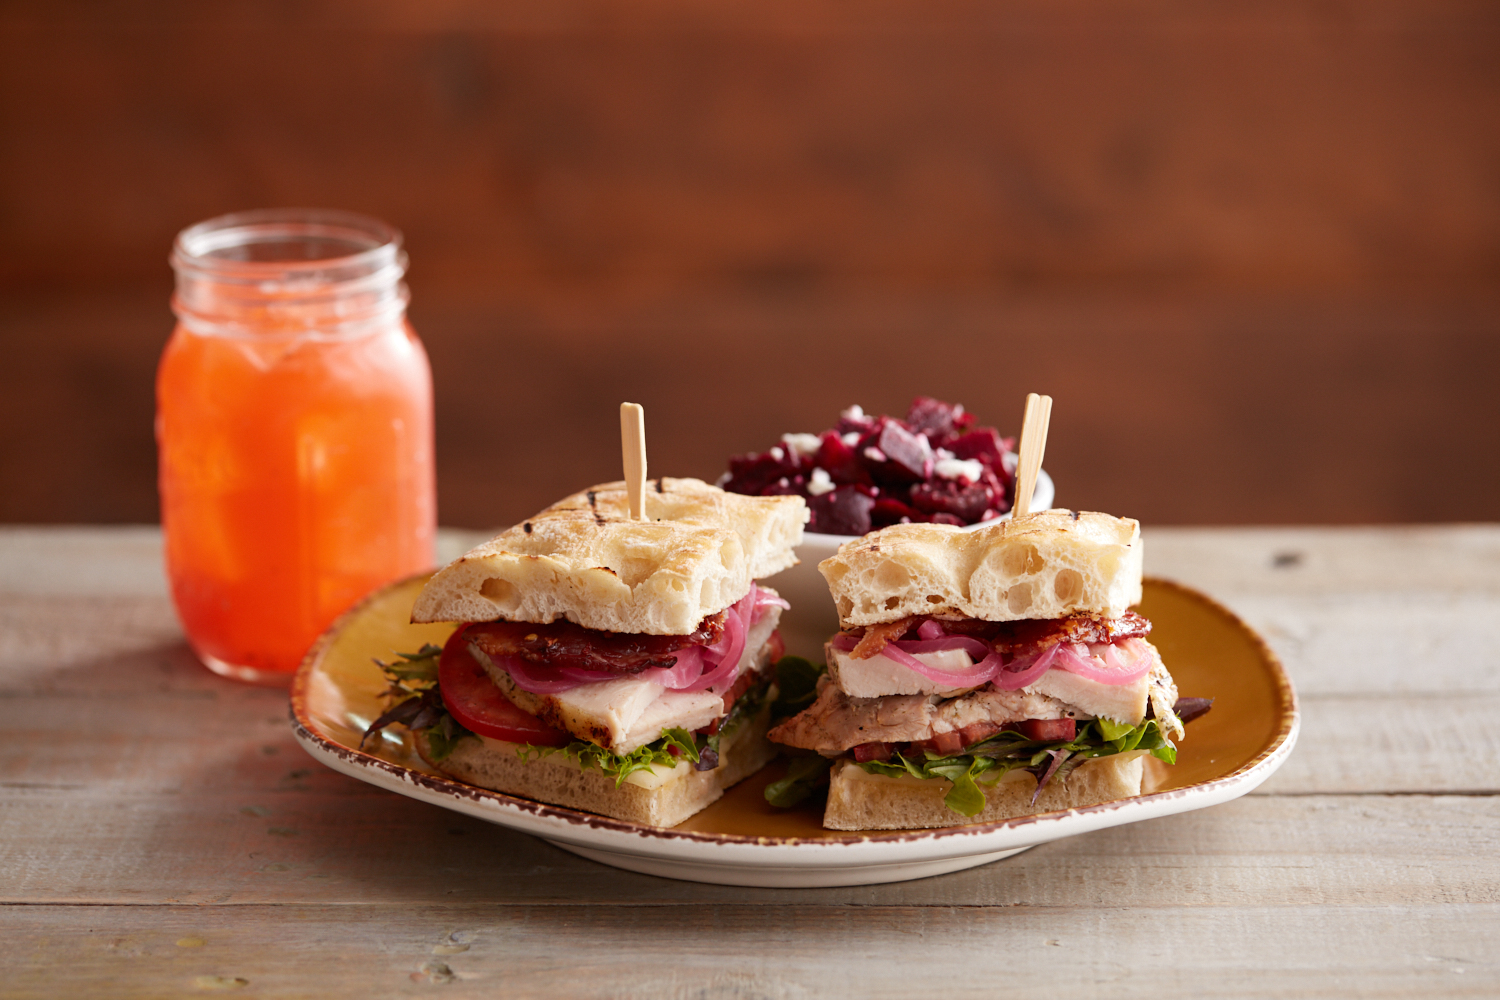 Kombucha on tap and grilled chicken sandwich on ciabatta bread with beet salad.